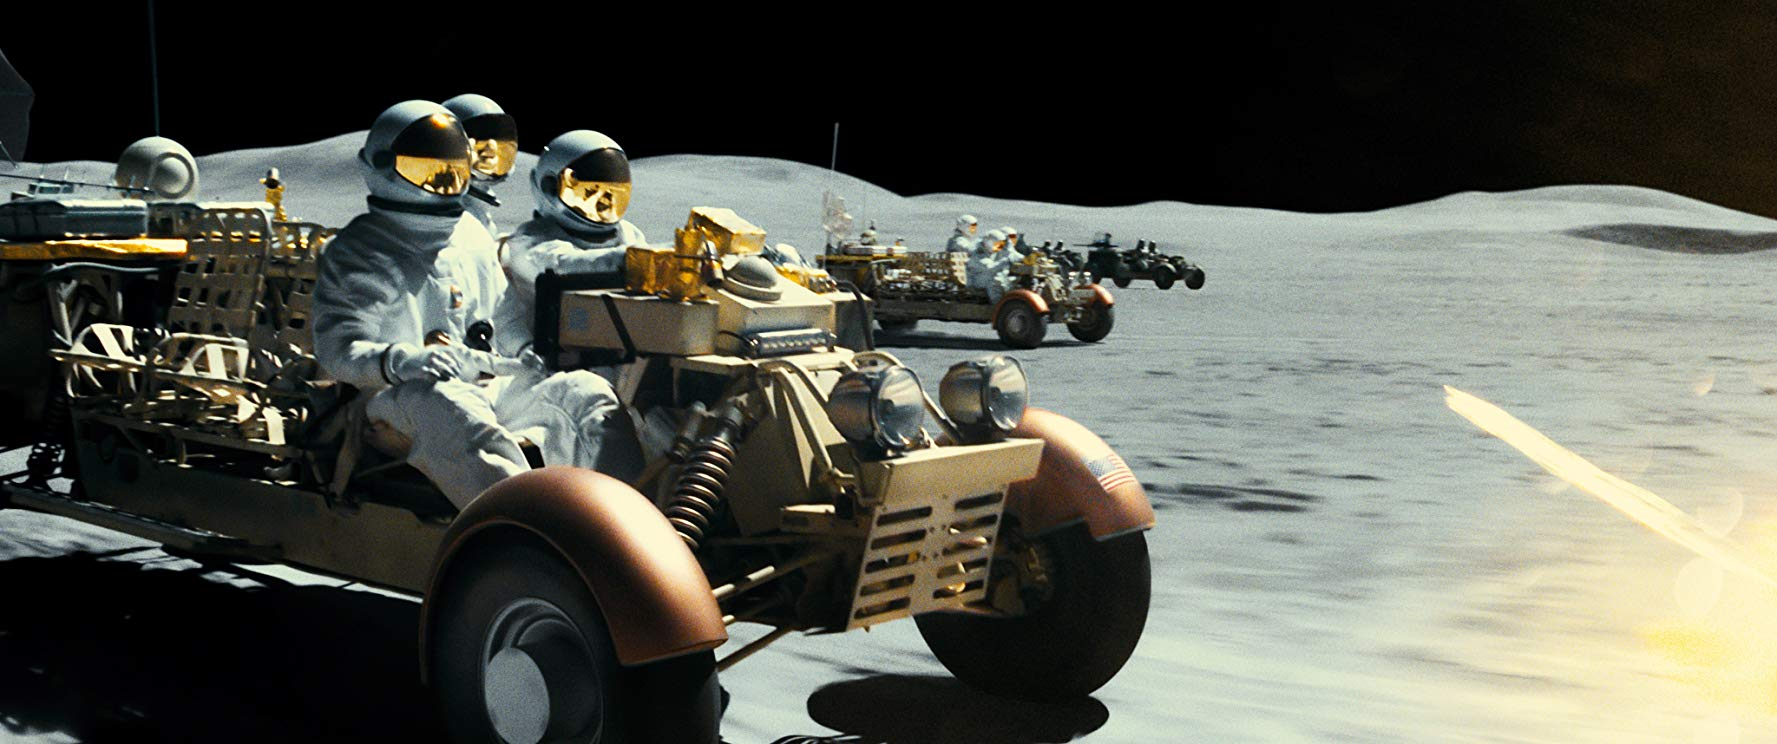 Vehicular chase with the pirates on The Moon in Ad Astra (2019)